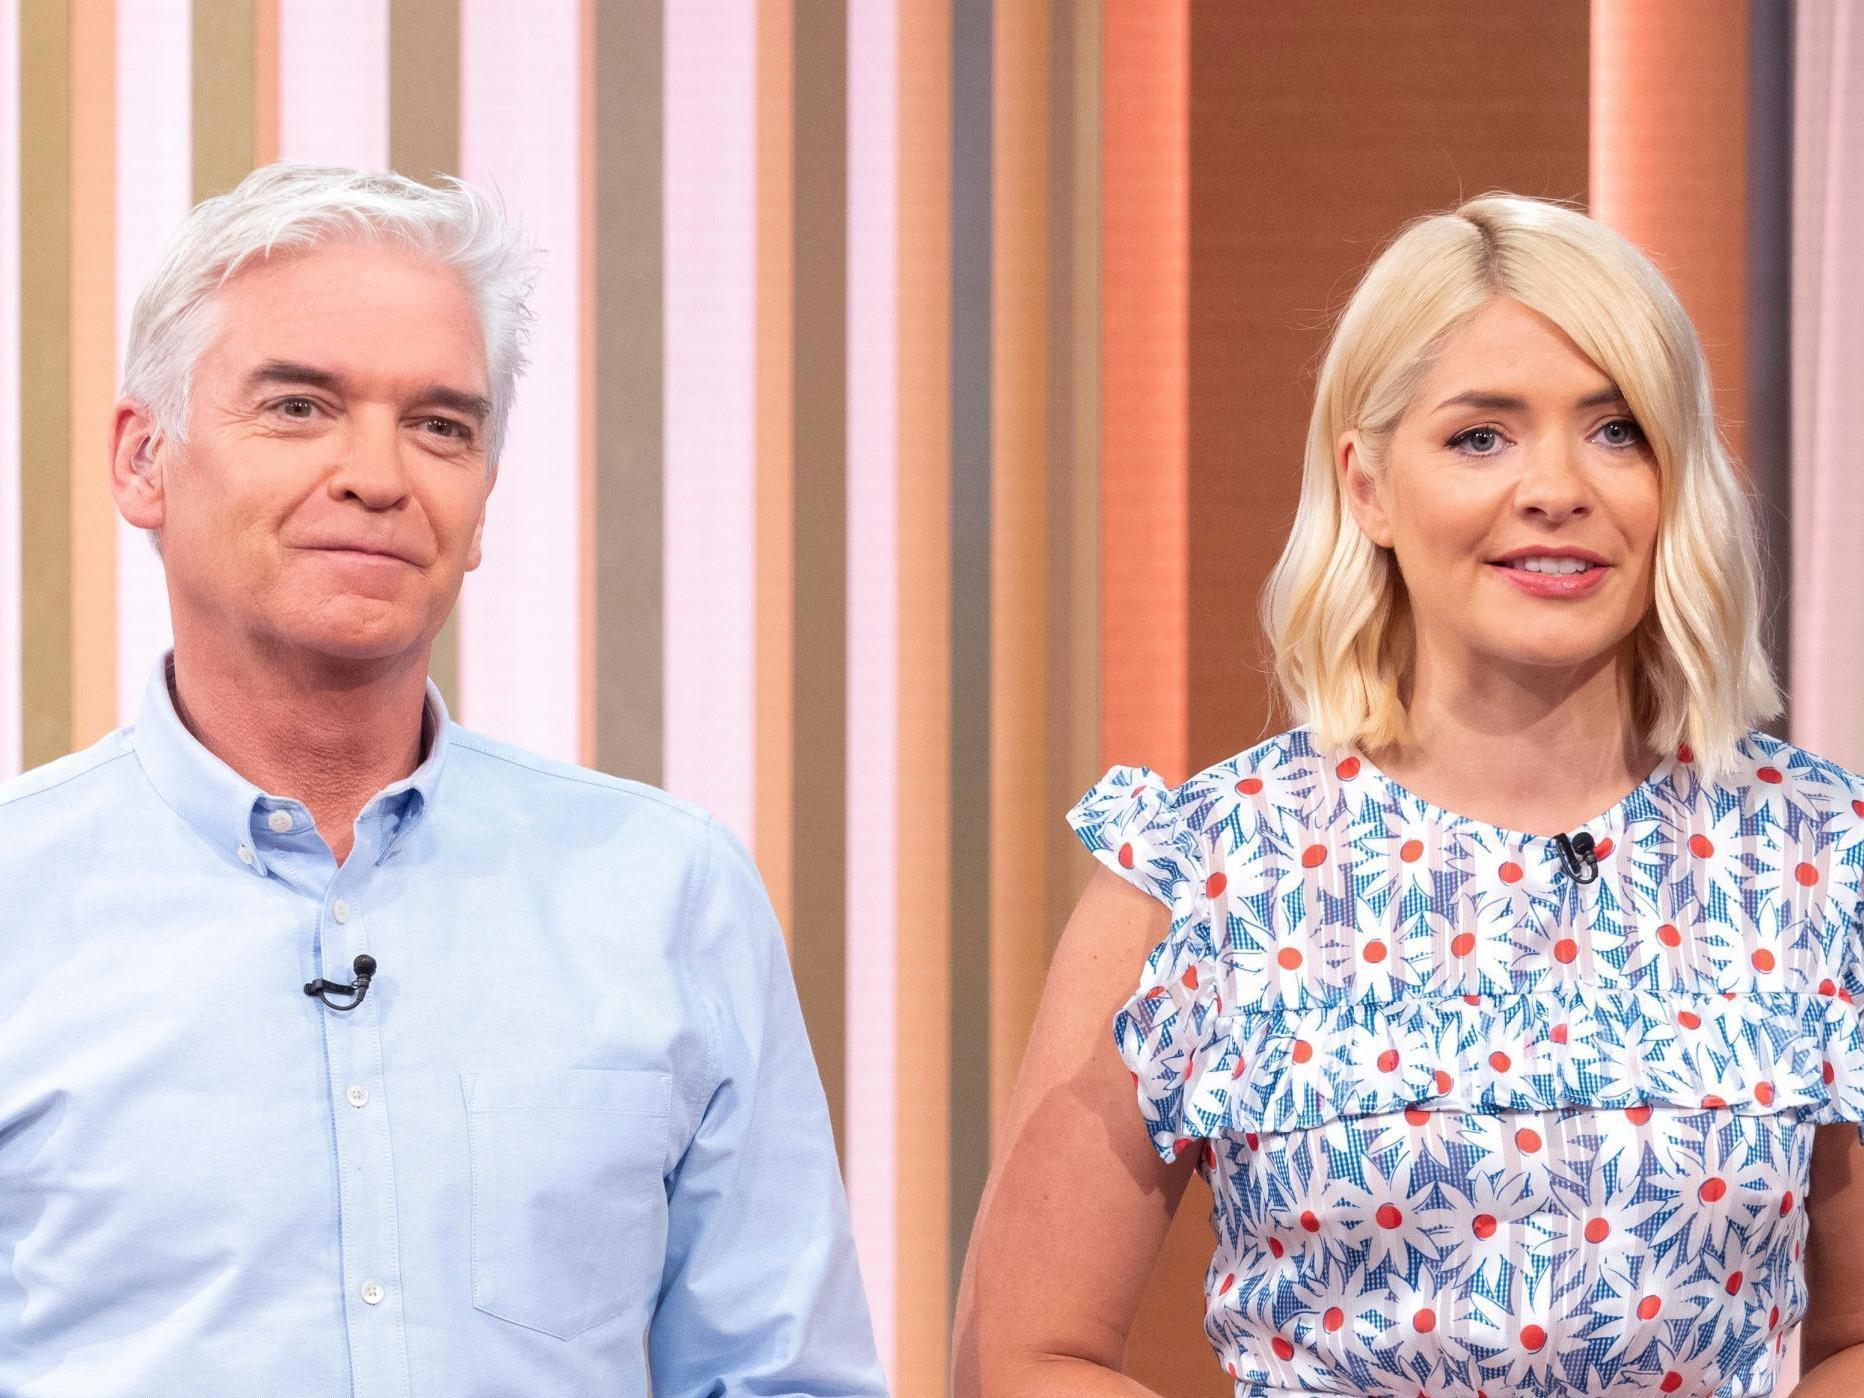 Holly Willoughby and Phillip Schofield address rumours of 'toxic' Th…